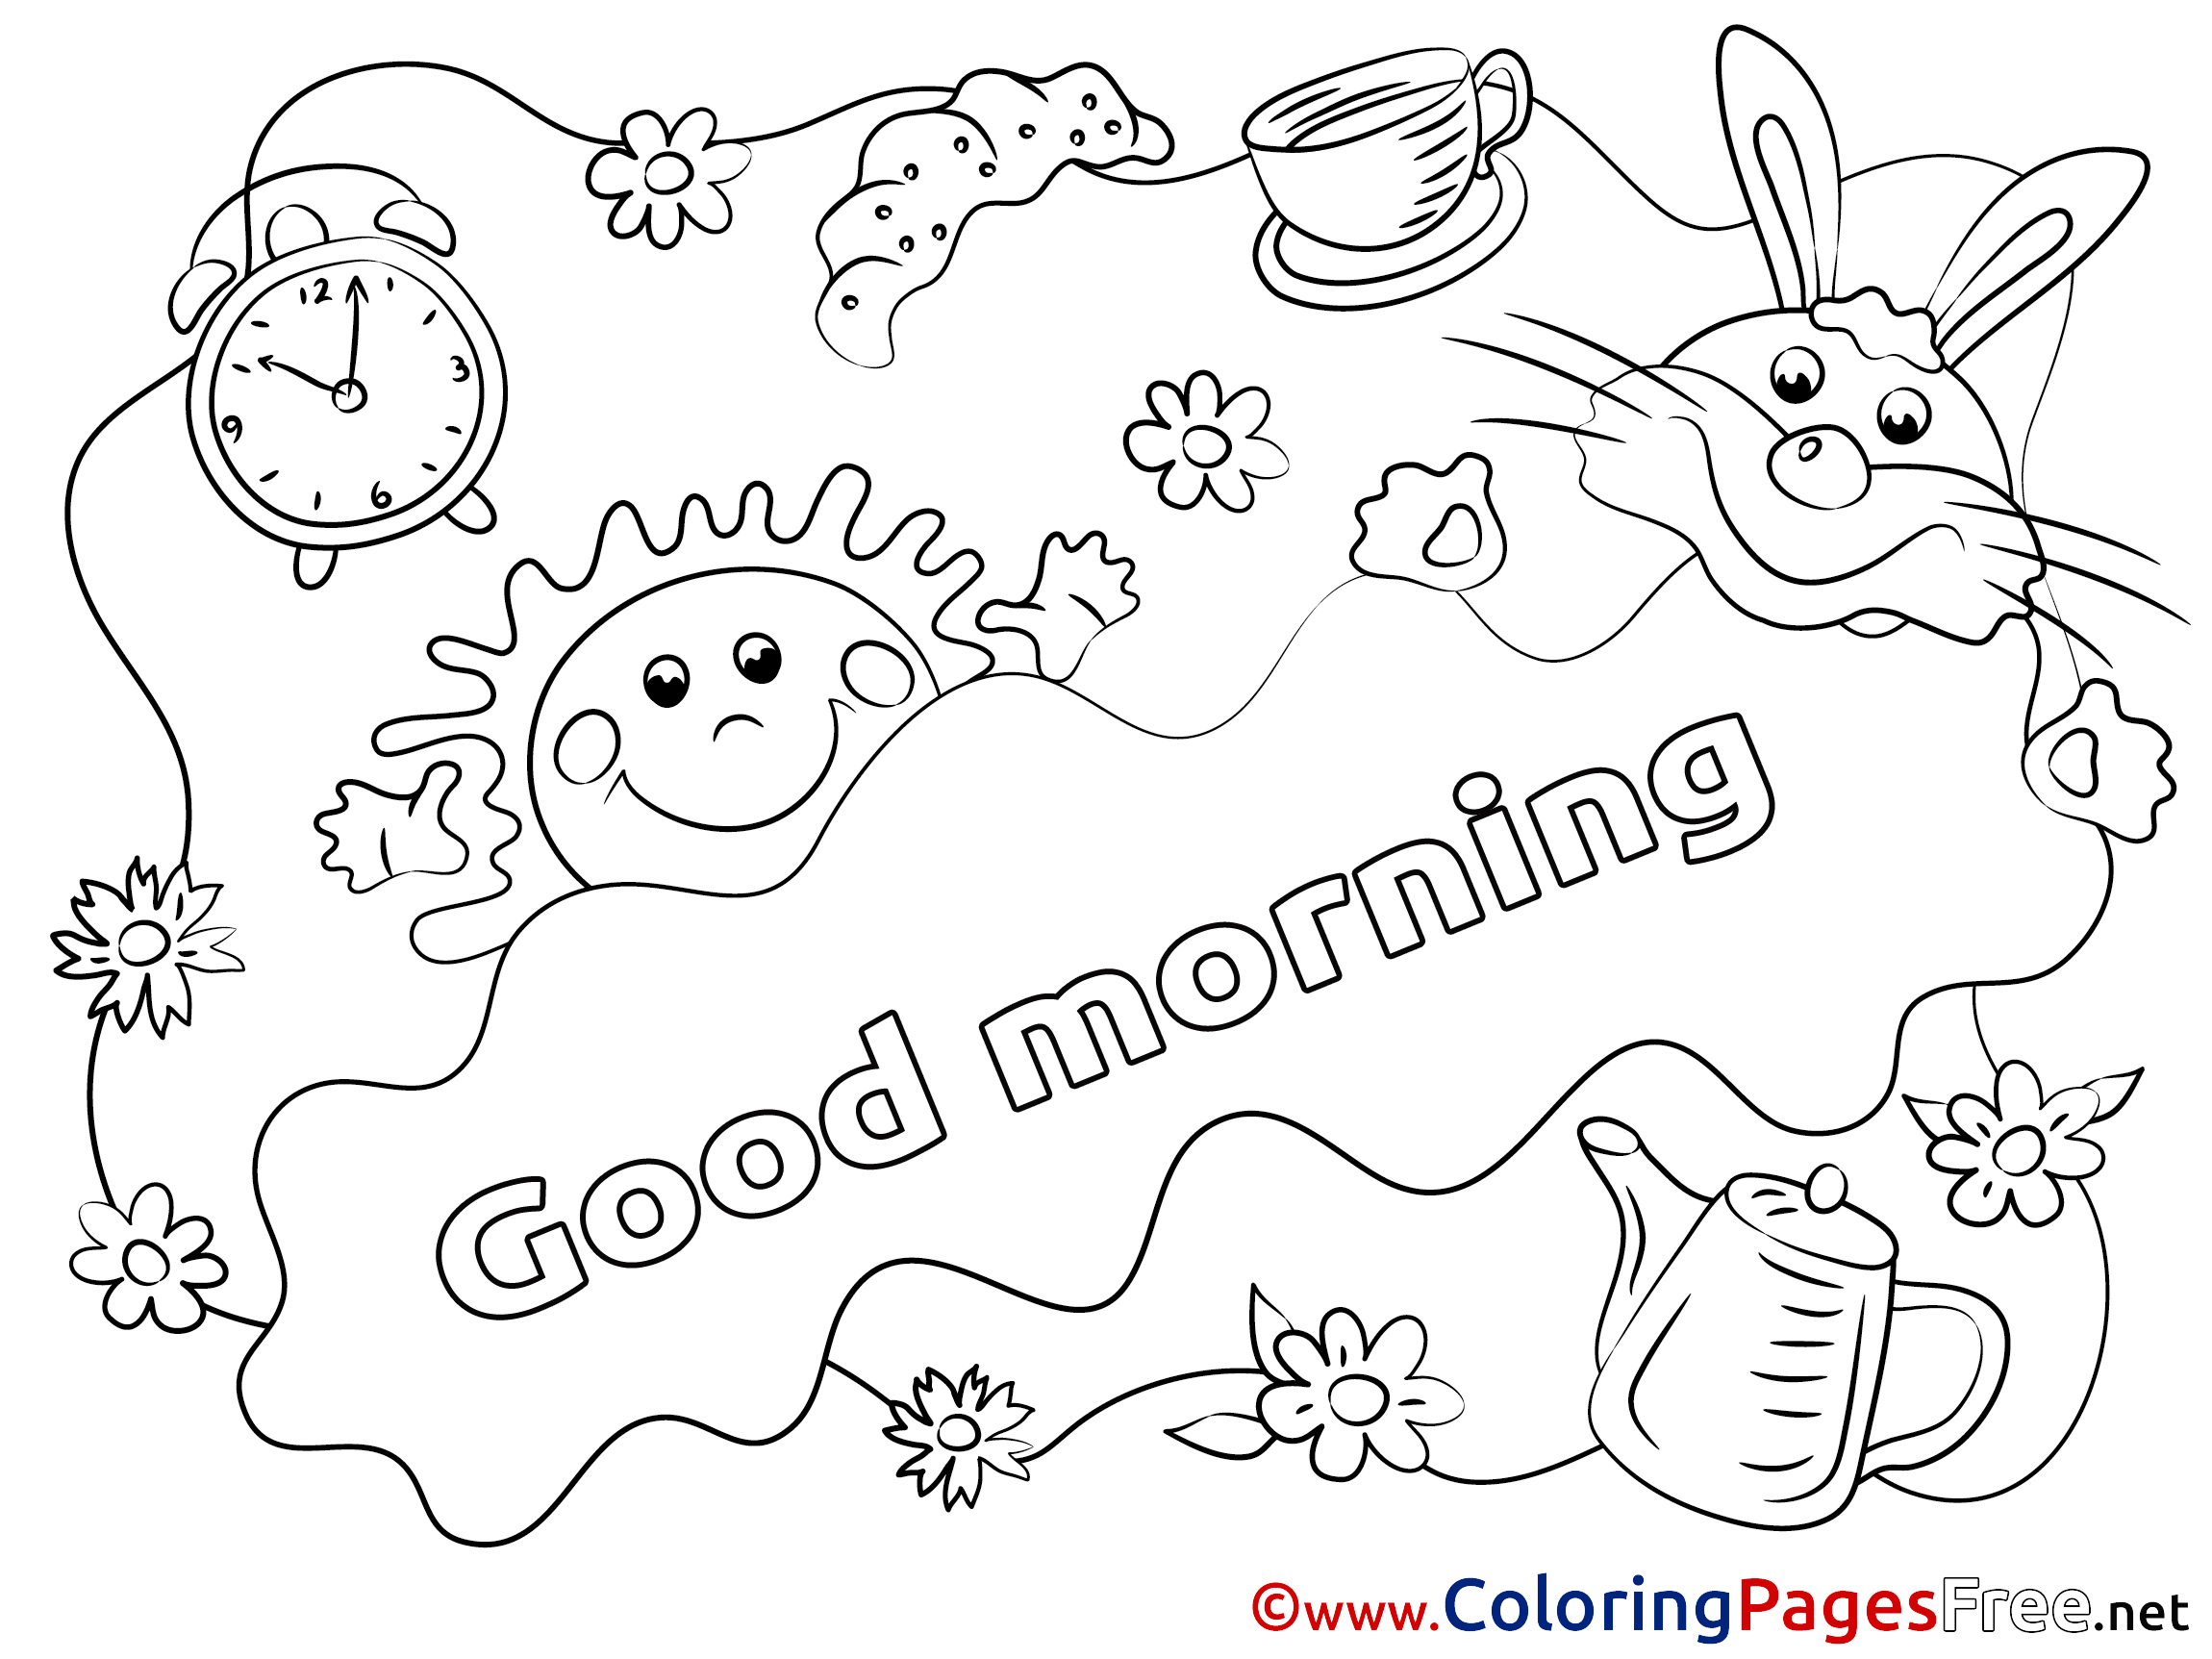 Good Morning Coloring Pages At Getcolorings